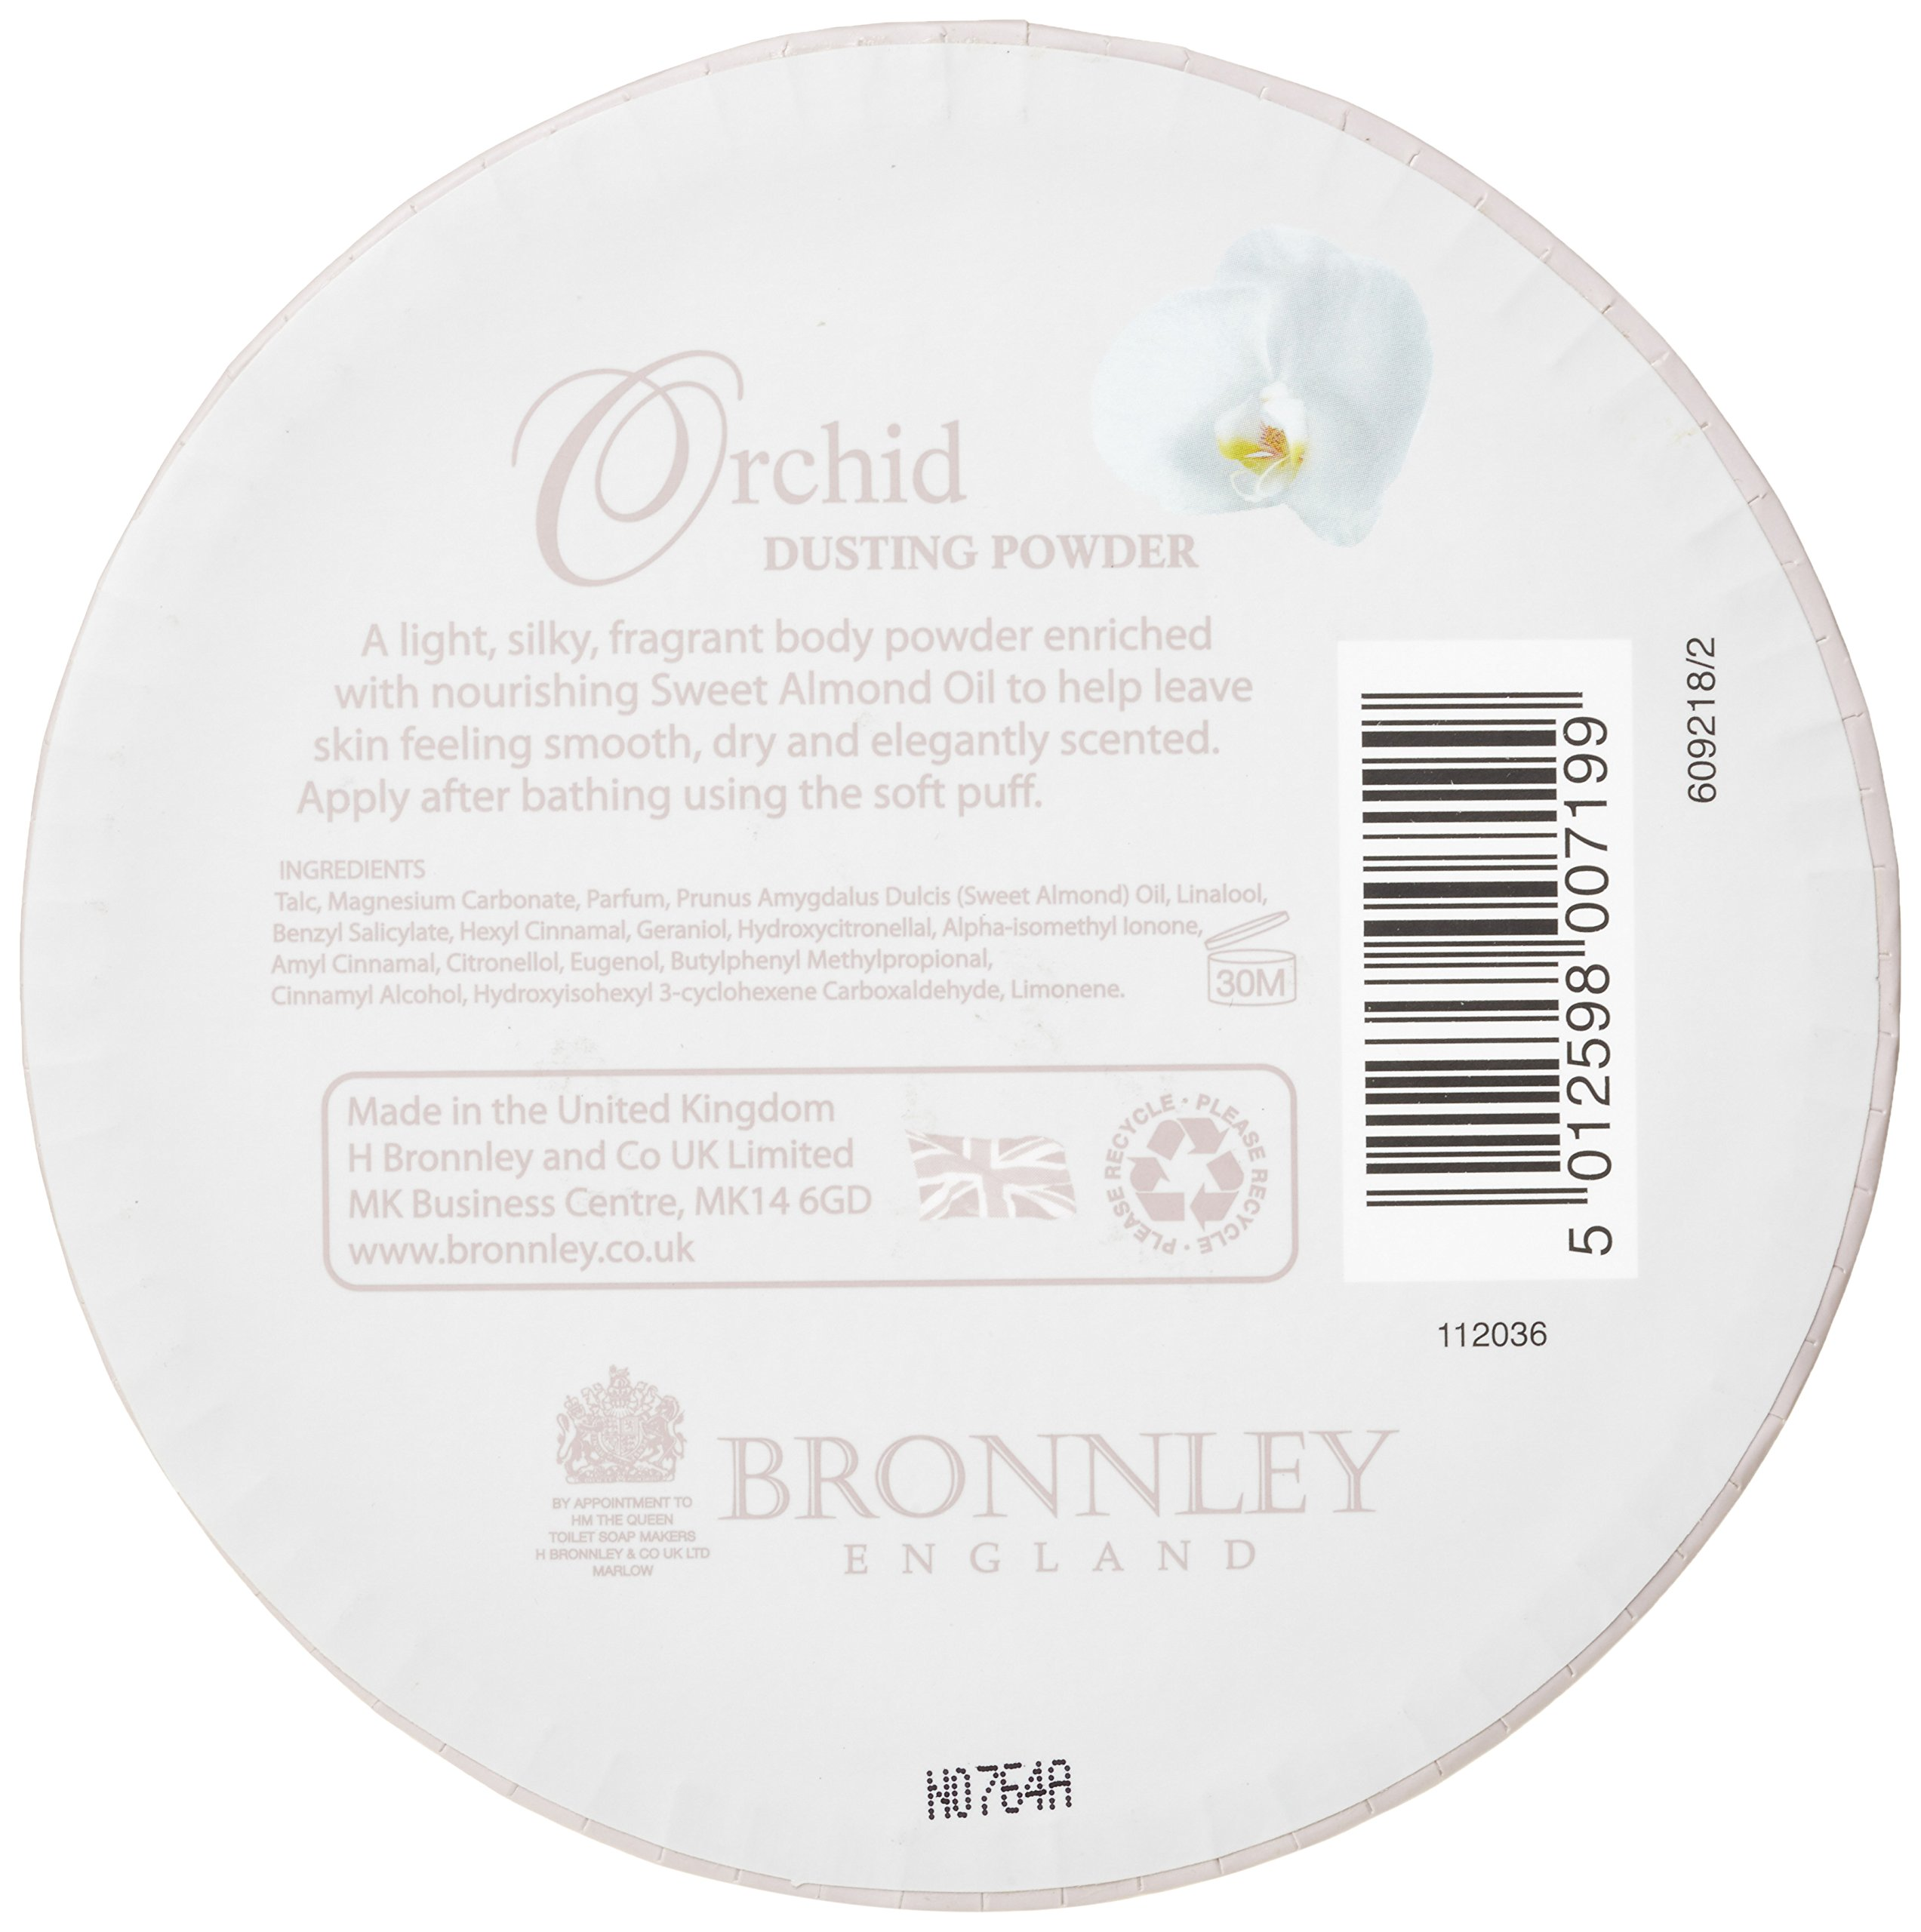 Bronnley Orchid Dusting Powder 75g by Tayongpo by Tayongpo (Image #2)